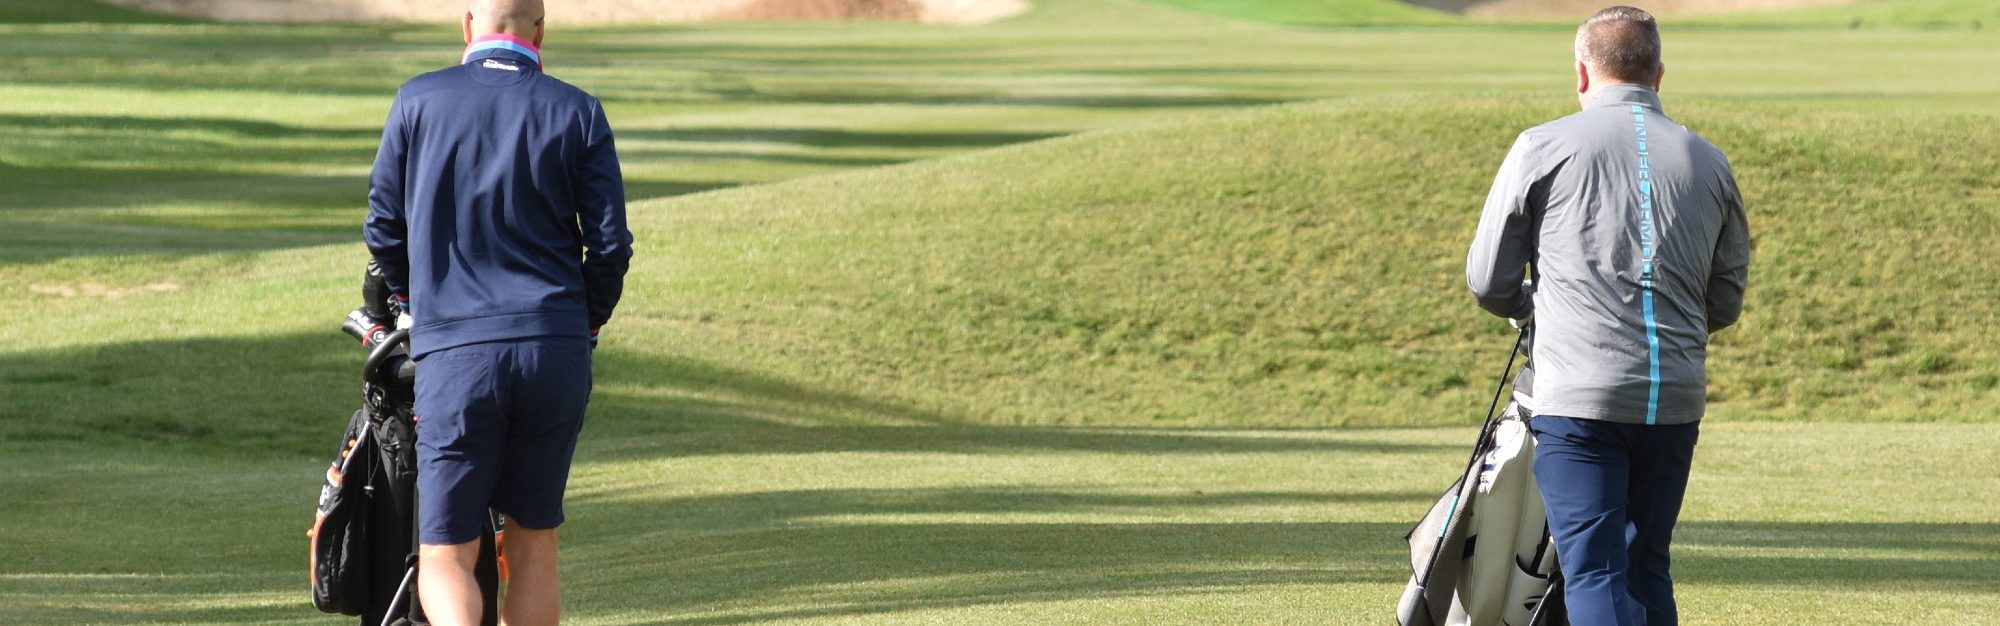 What do club golfers think of the World Handicap System? We went to ask some